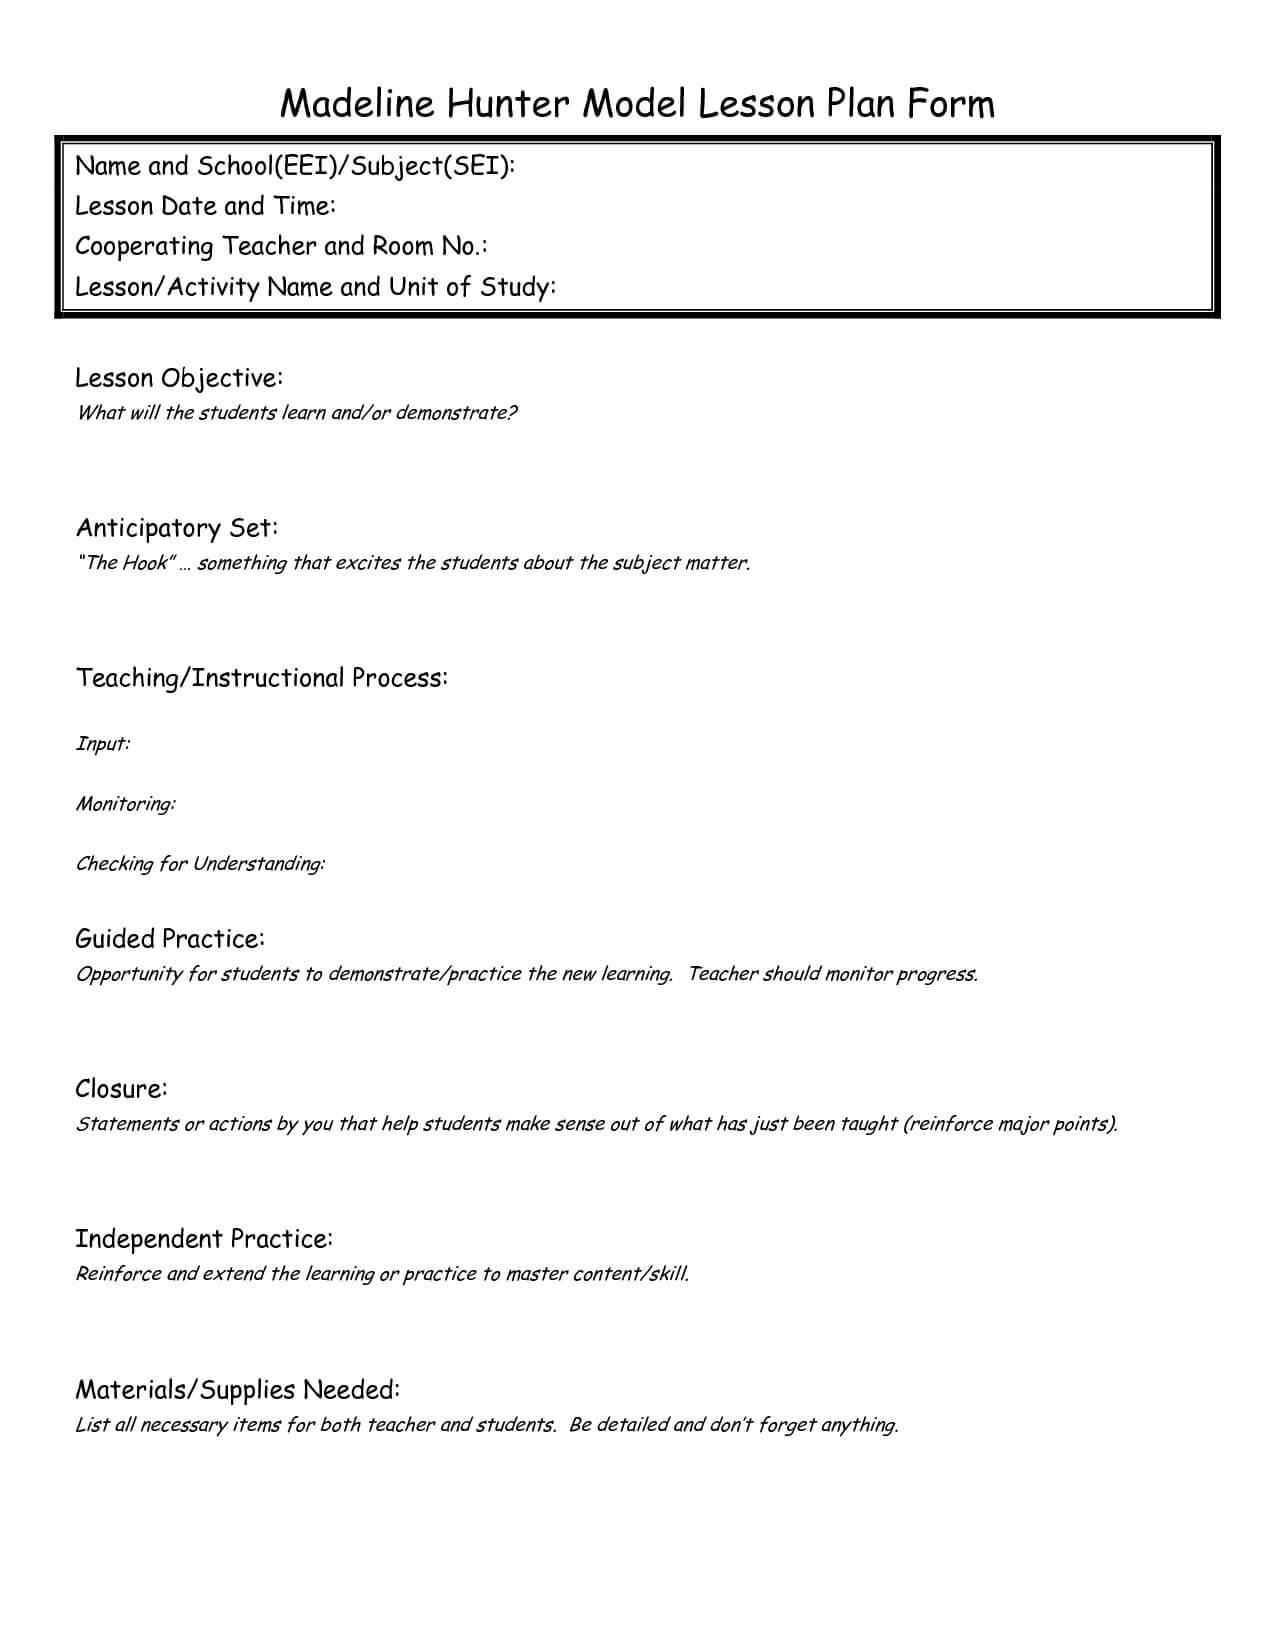 Madeline Hunter Lesson Plan Format Template - Google Search inside Madeline Hunter Lesson Plan Template Blank